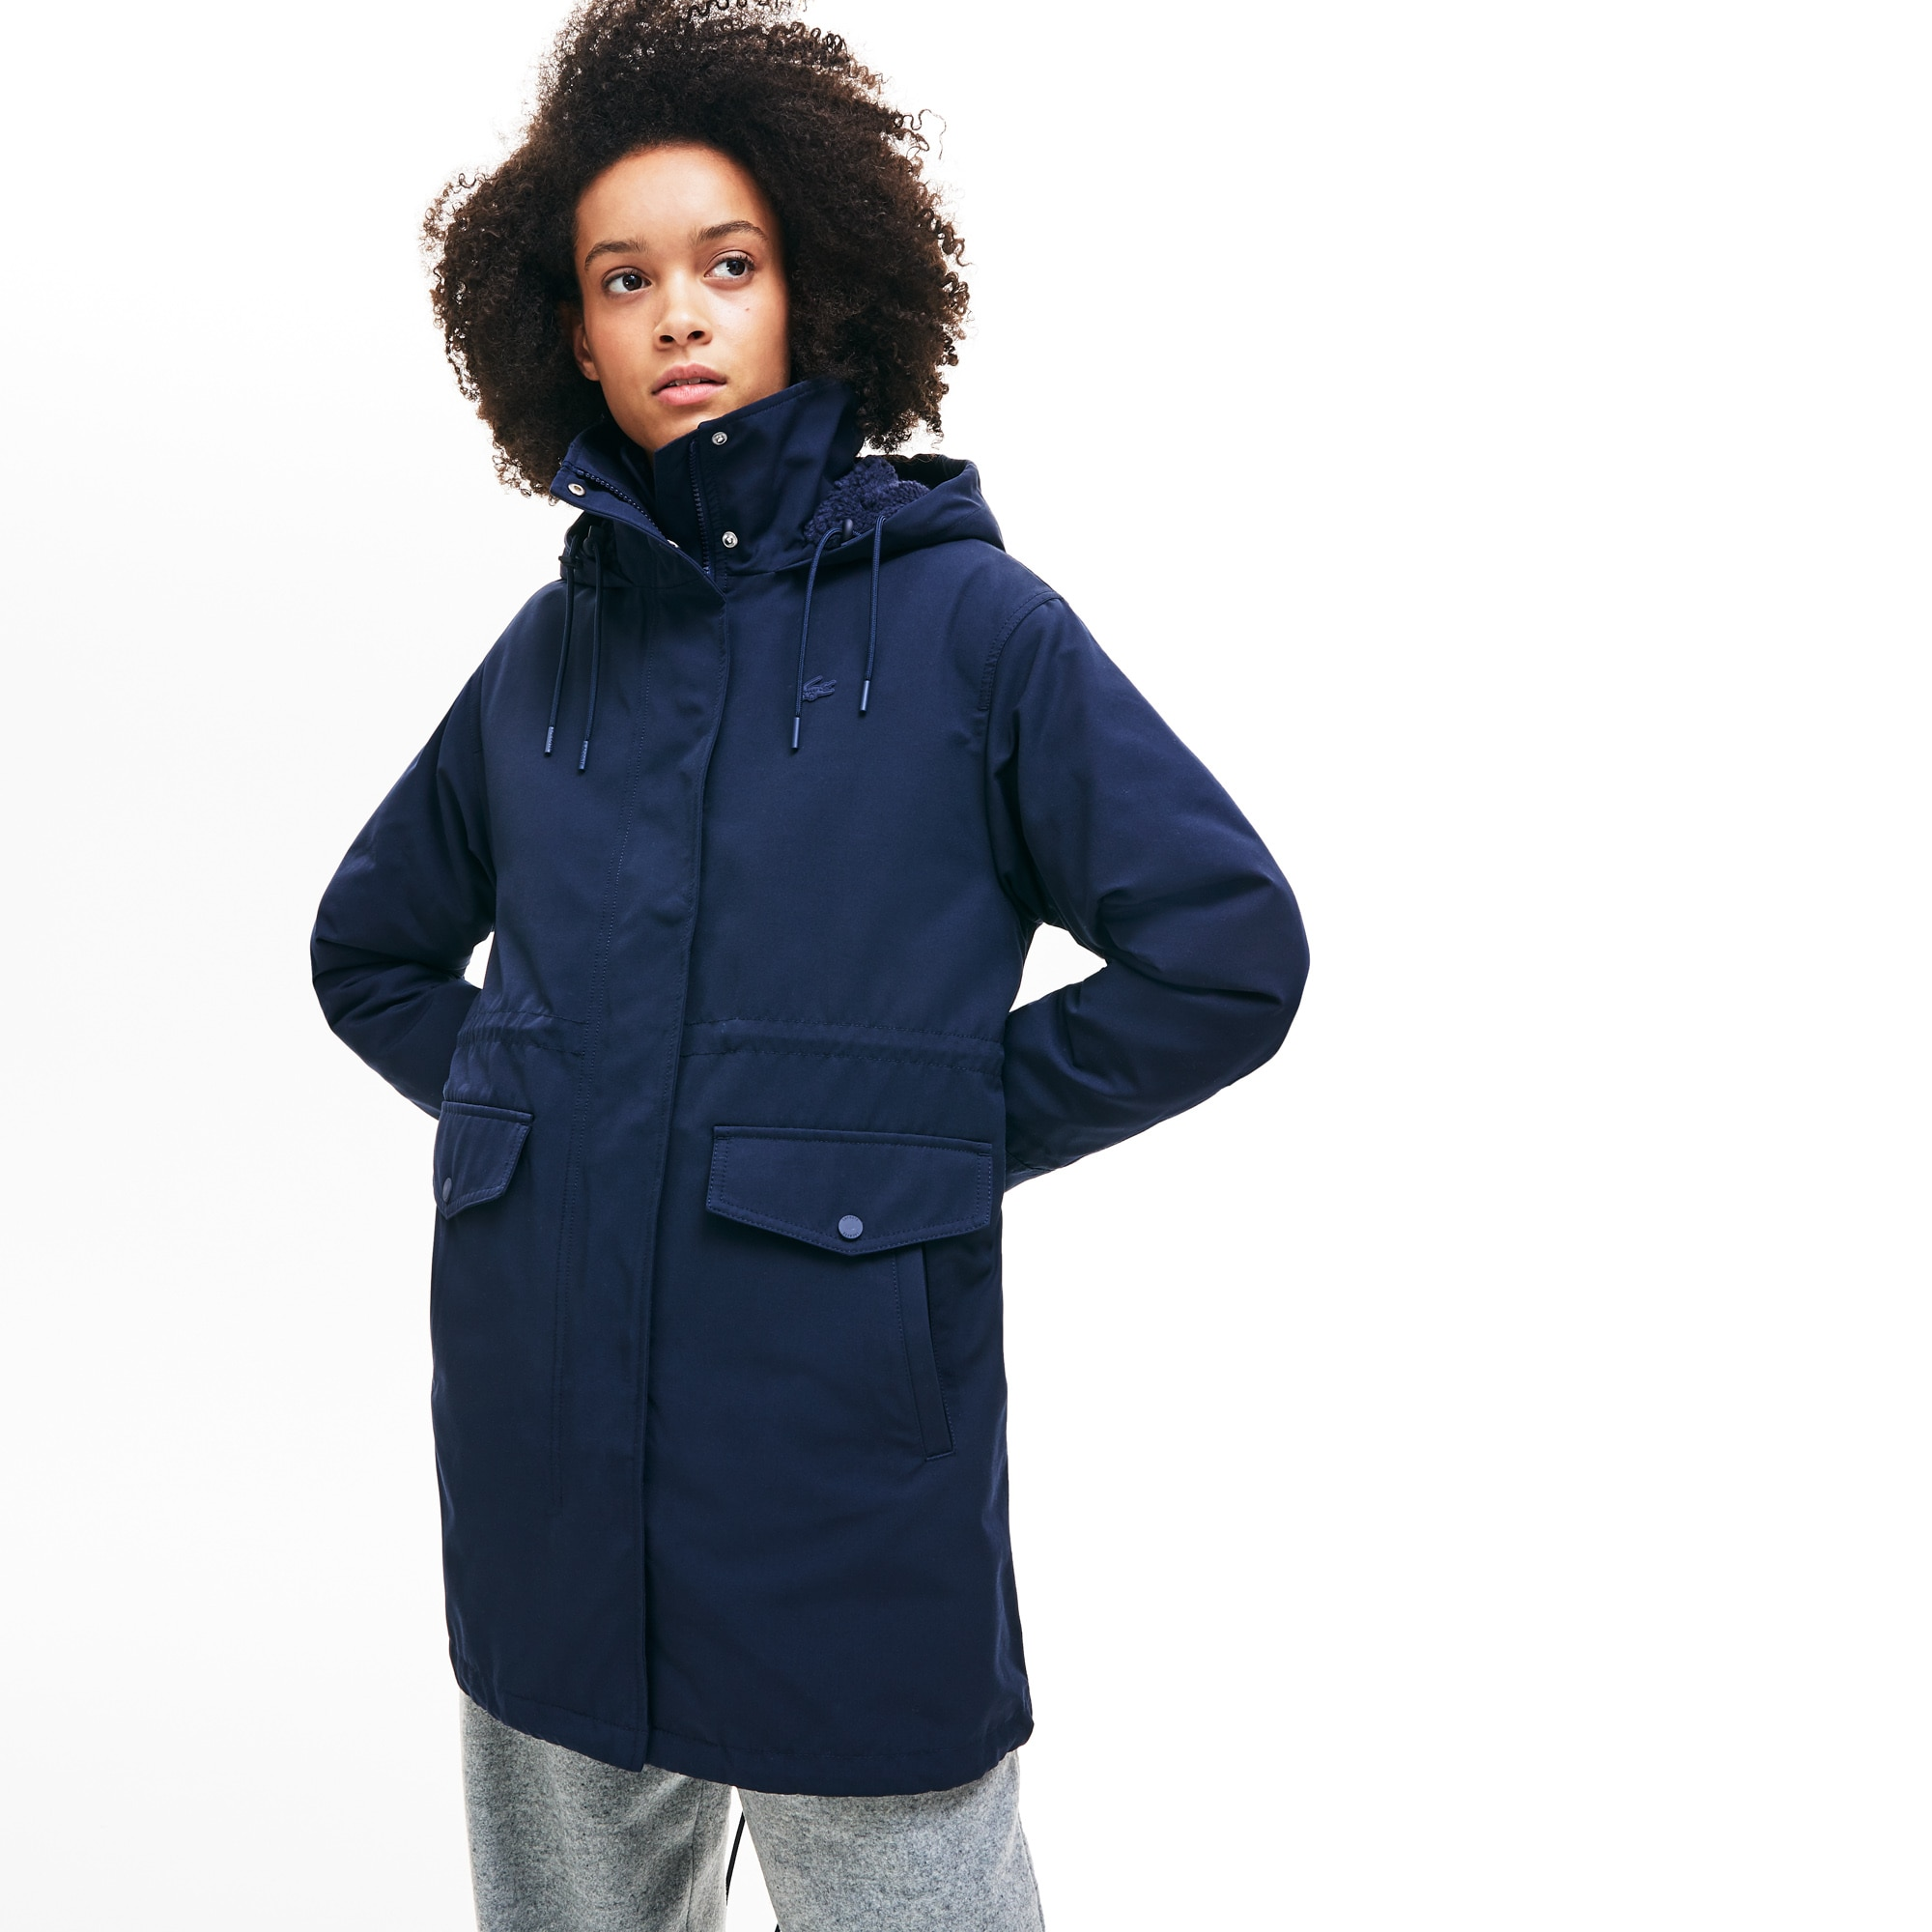 Lacoste Coats Women's 3-In-1 Detachable Quilted Jacket And Hooded Cotton Parka